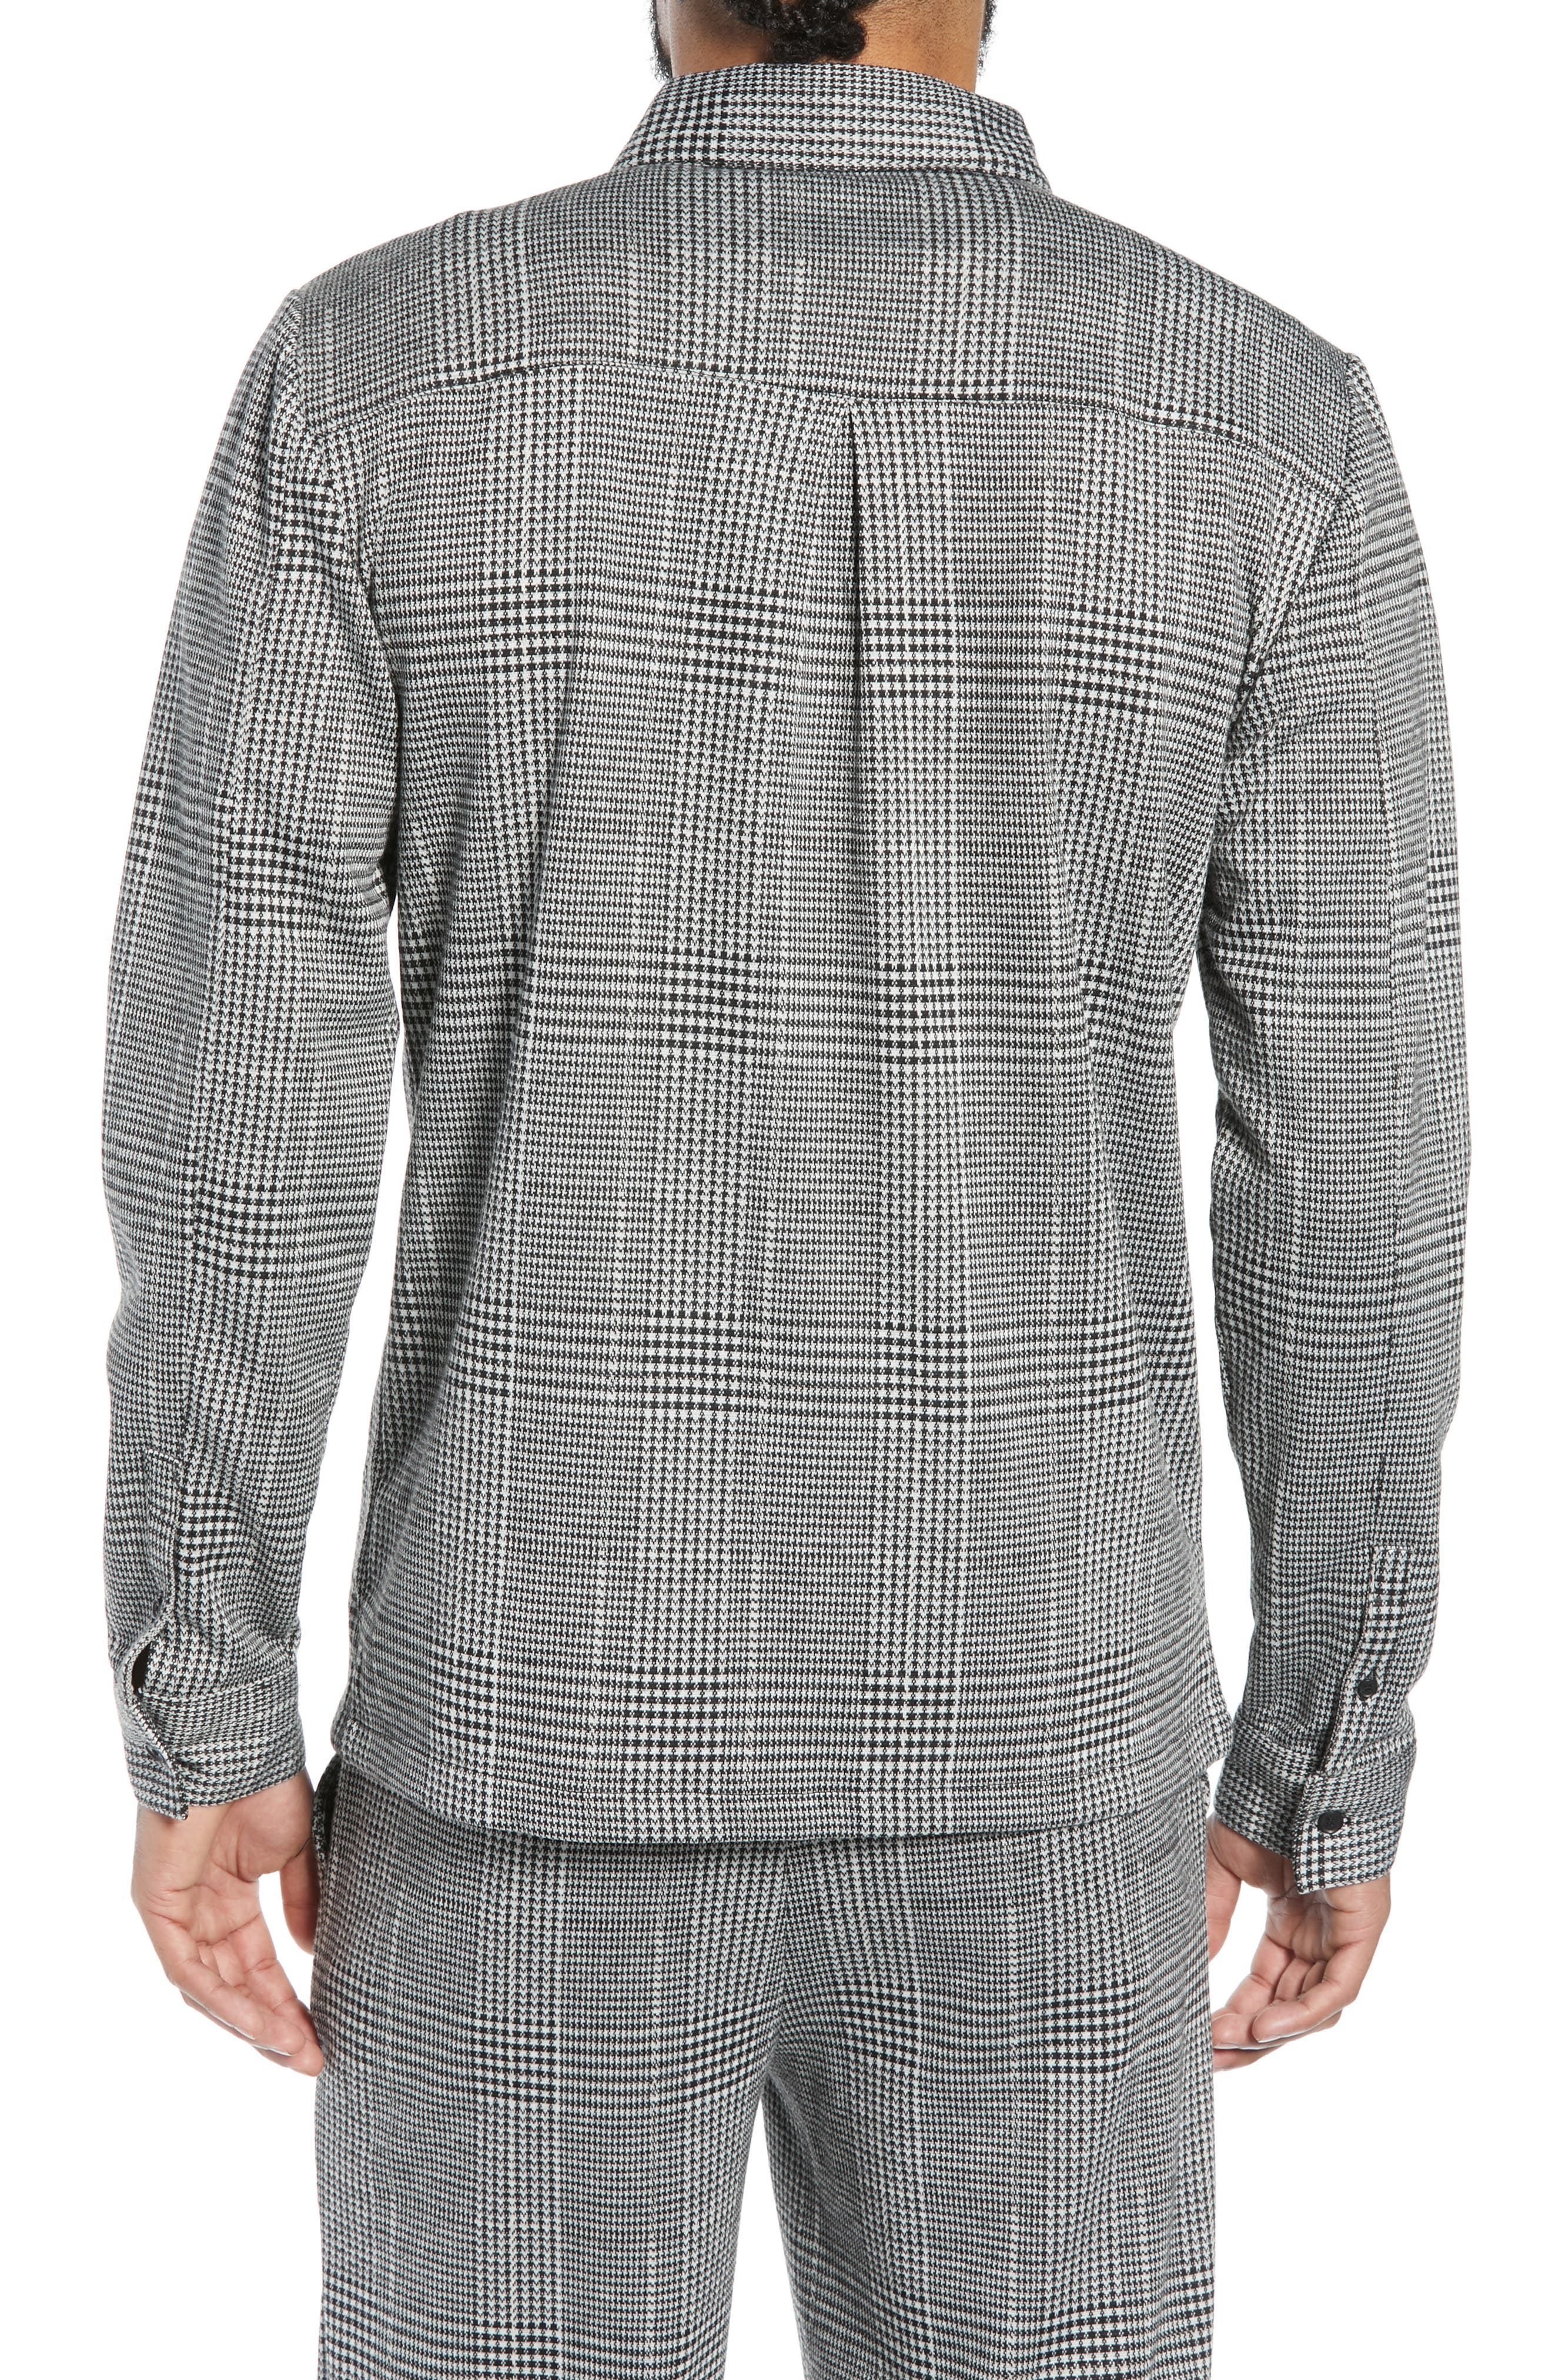 Houndstooth Check Overshirt,                             Alternate thumbnail 2, color,                             BLACK